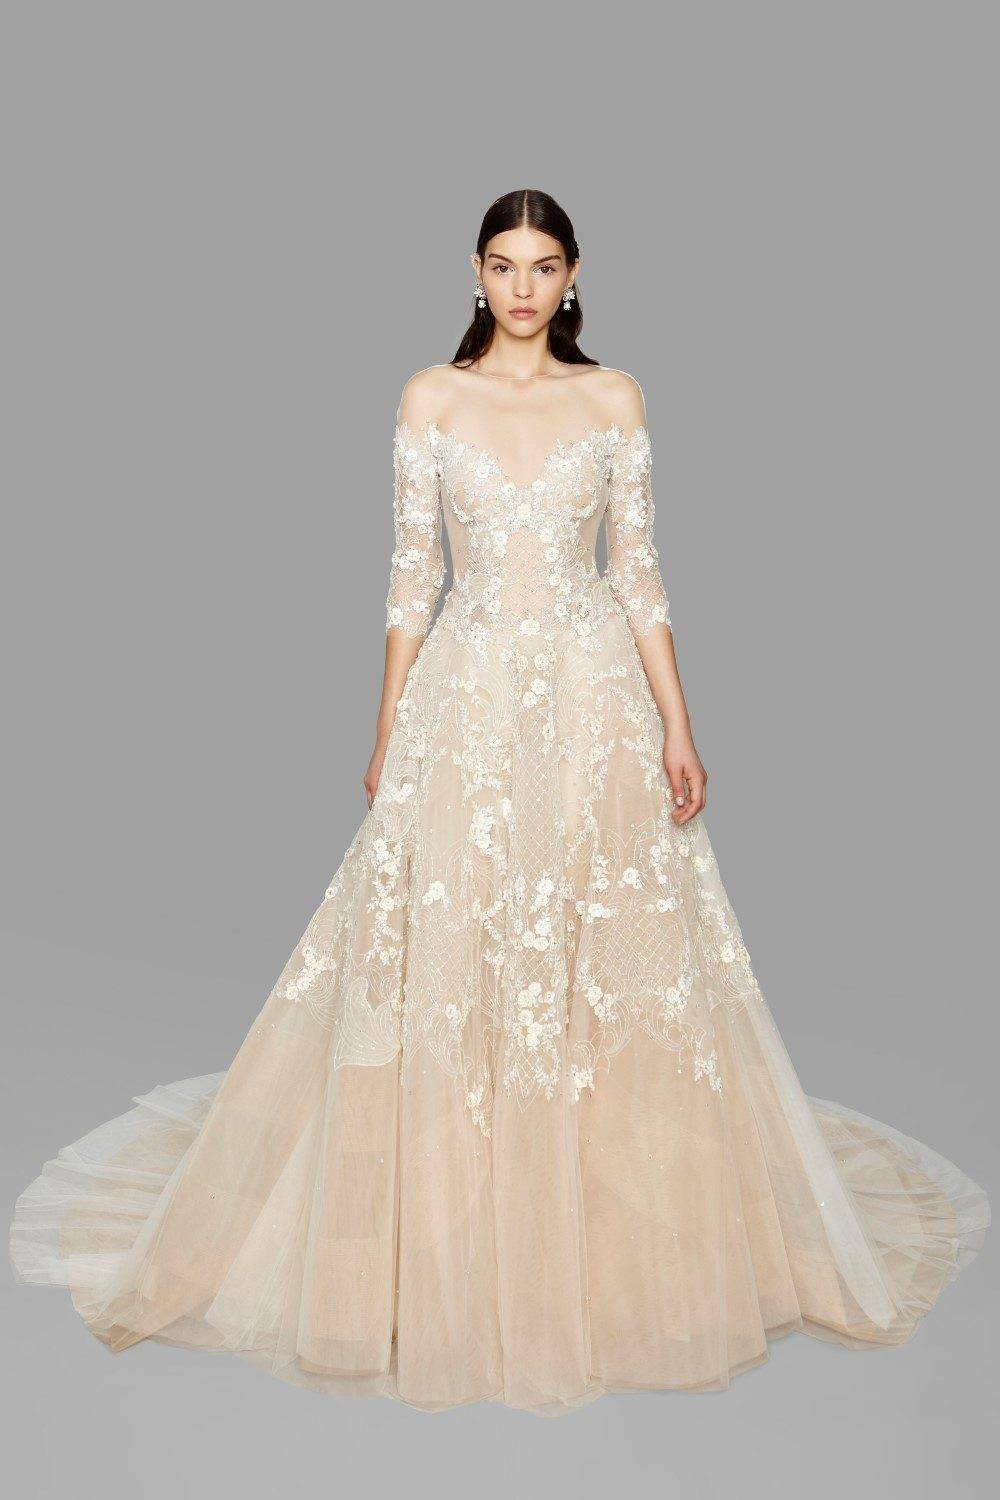 Marchesa's Fall Couture Collection